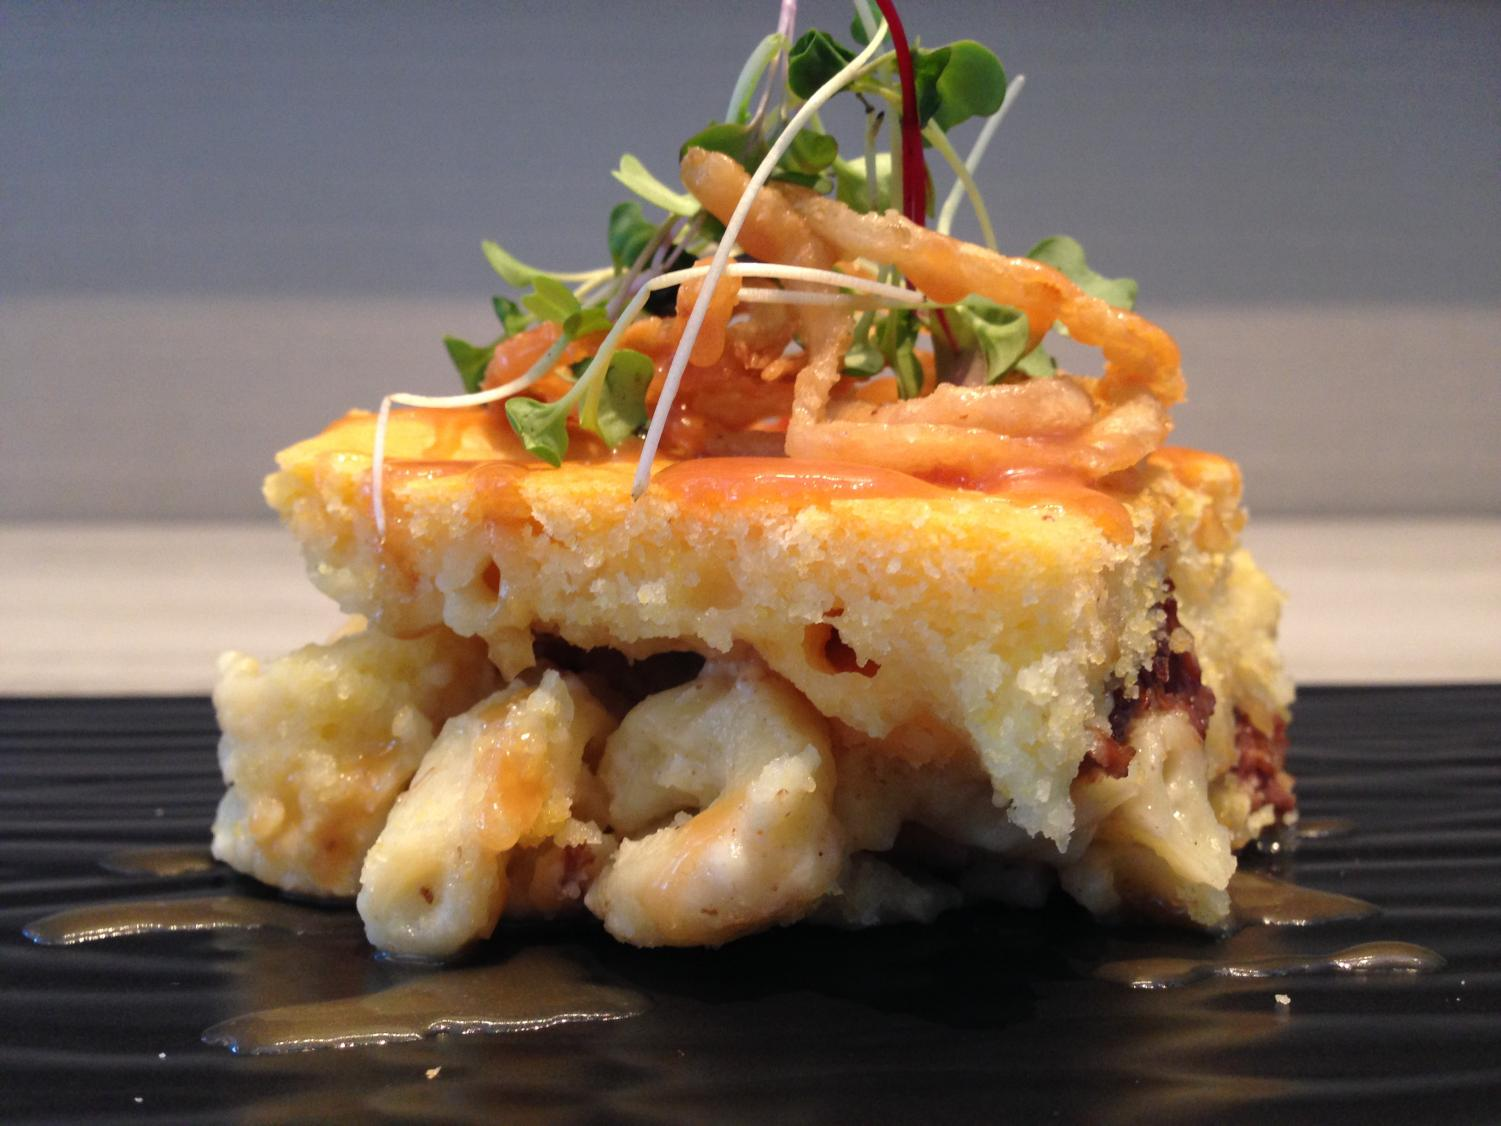 The winner of the Golden Noodle at the 2014 inaugural Mac and Cheese Festival was Kitty O'Sheas' sweet, salty and spicy mac and cheese dish.